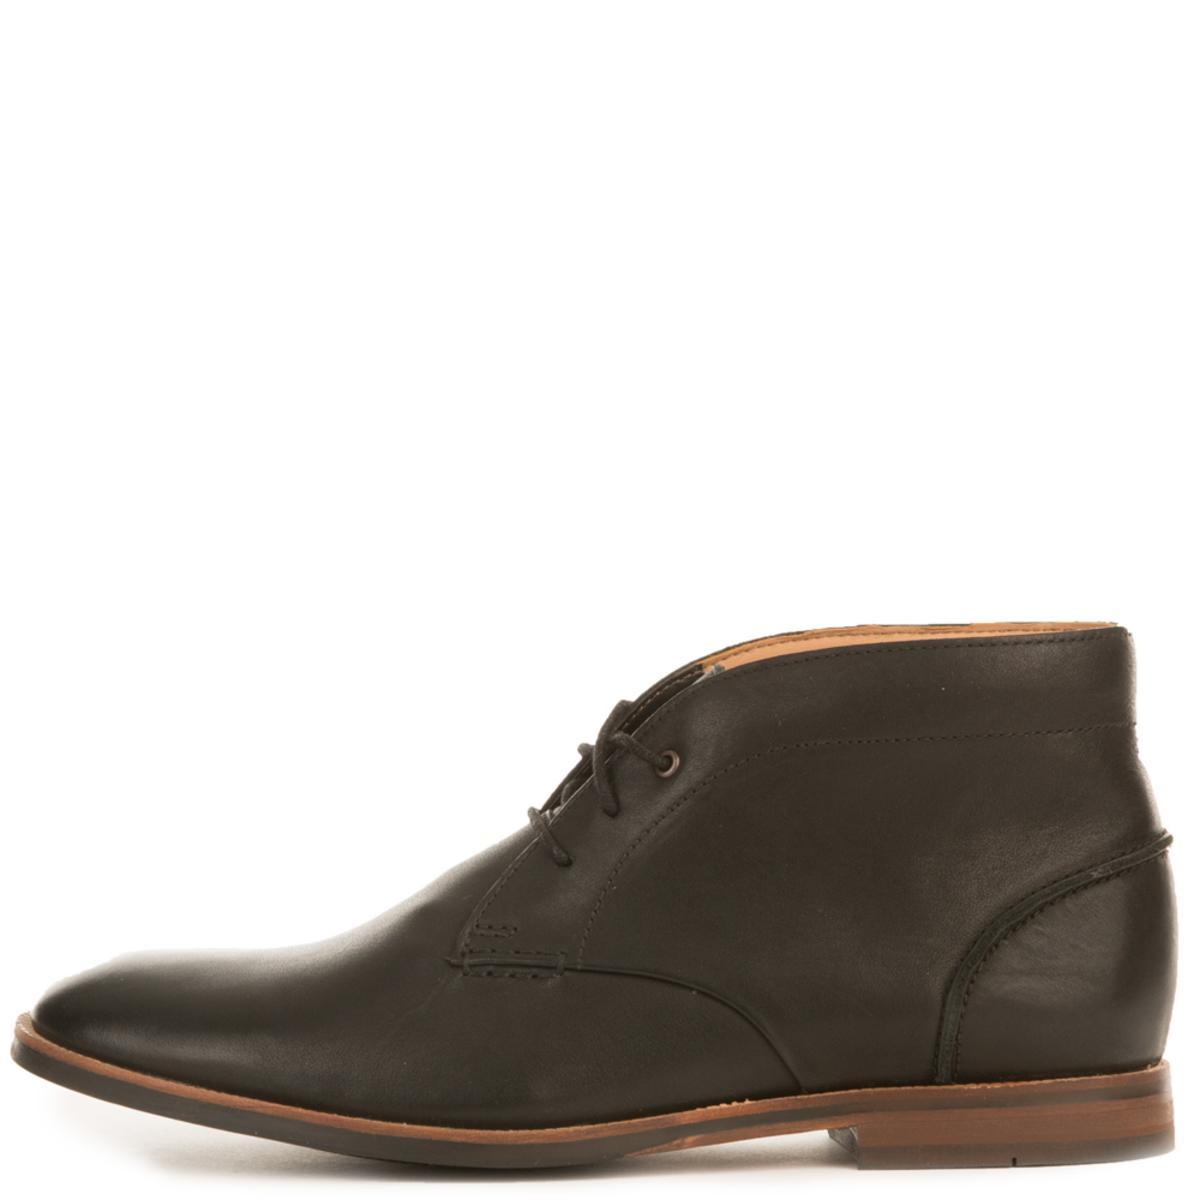 Men's Broyd Mid Black Leather Chukka Boots